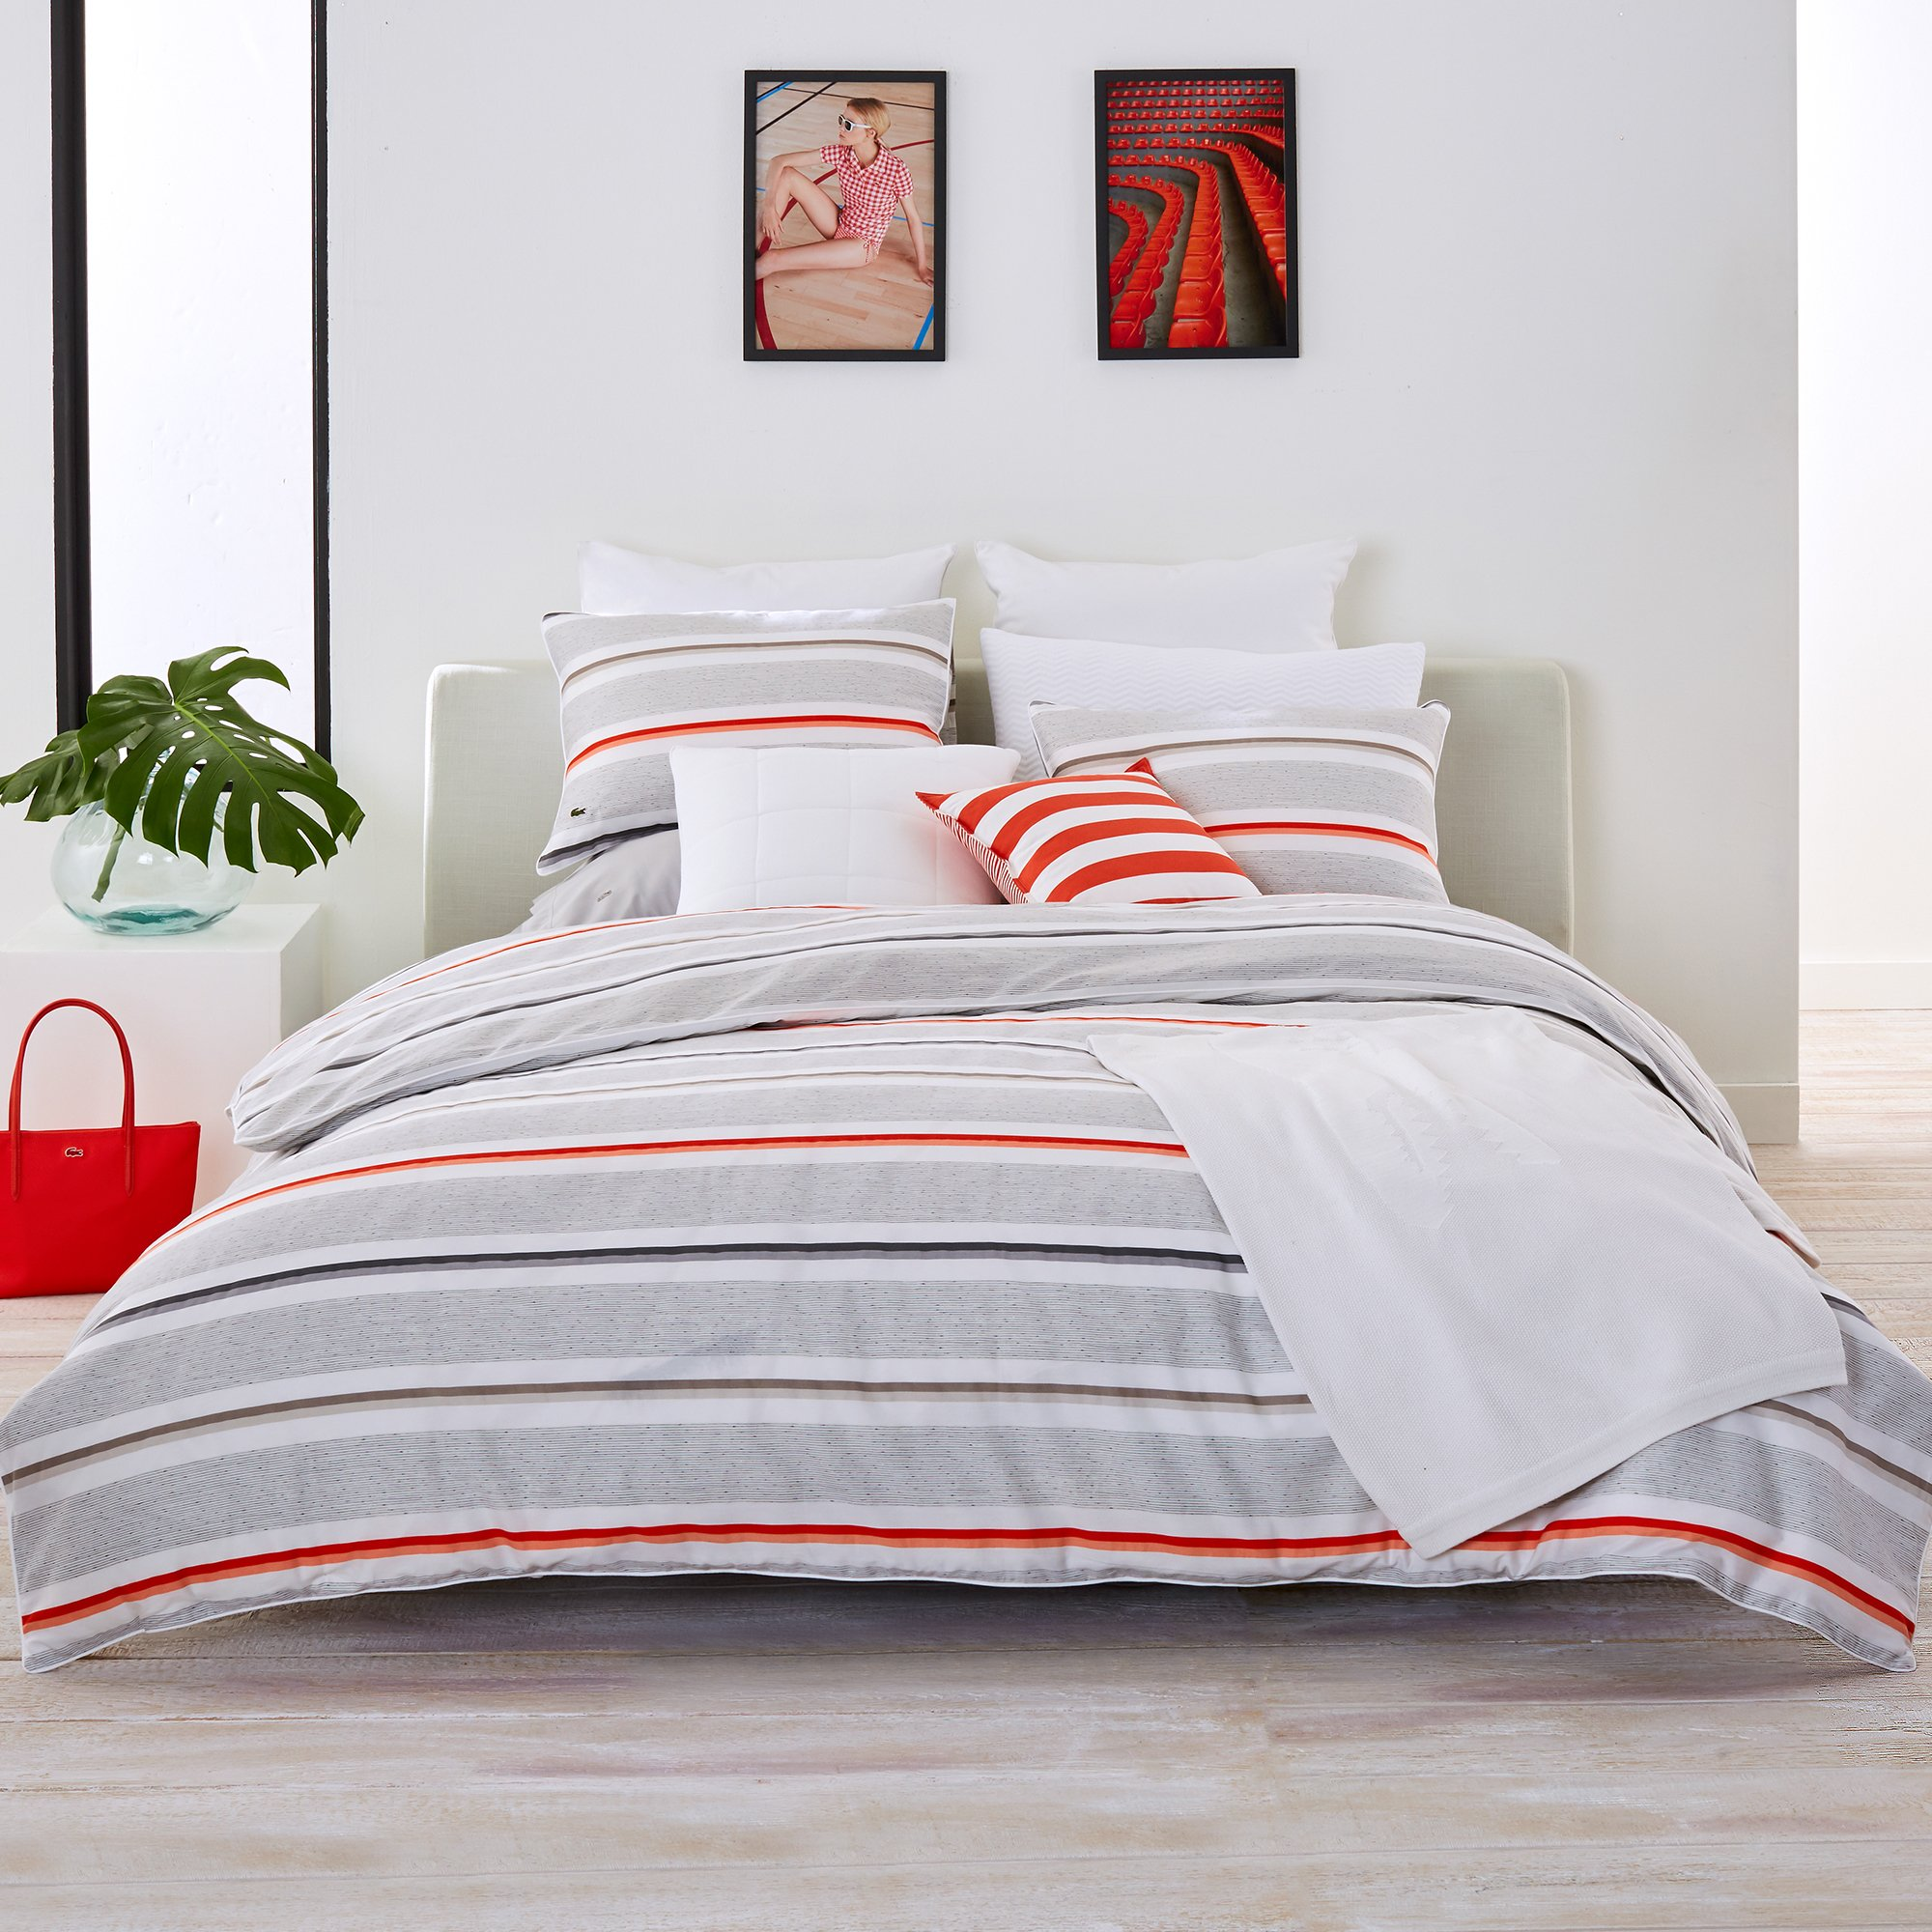 Lacoste Bastia Coral and Grey Striped Brushed Twill Comforter Set, Twin/Twin Extra Long by Lacoste